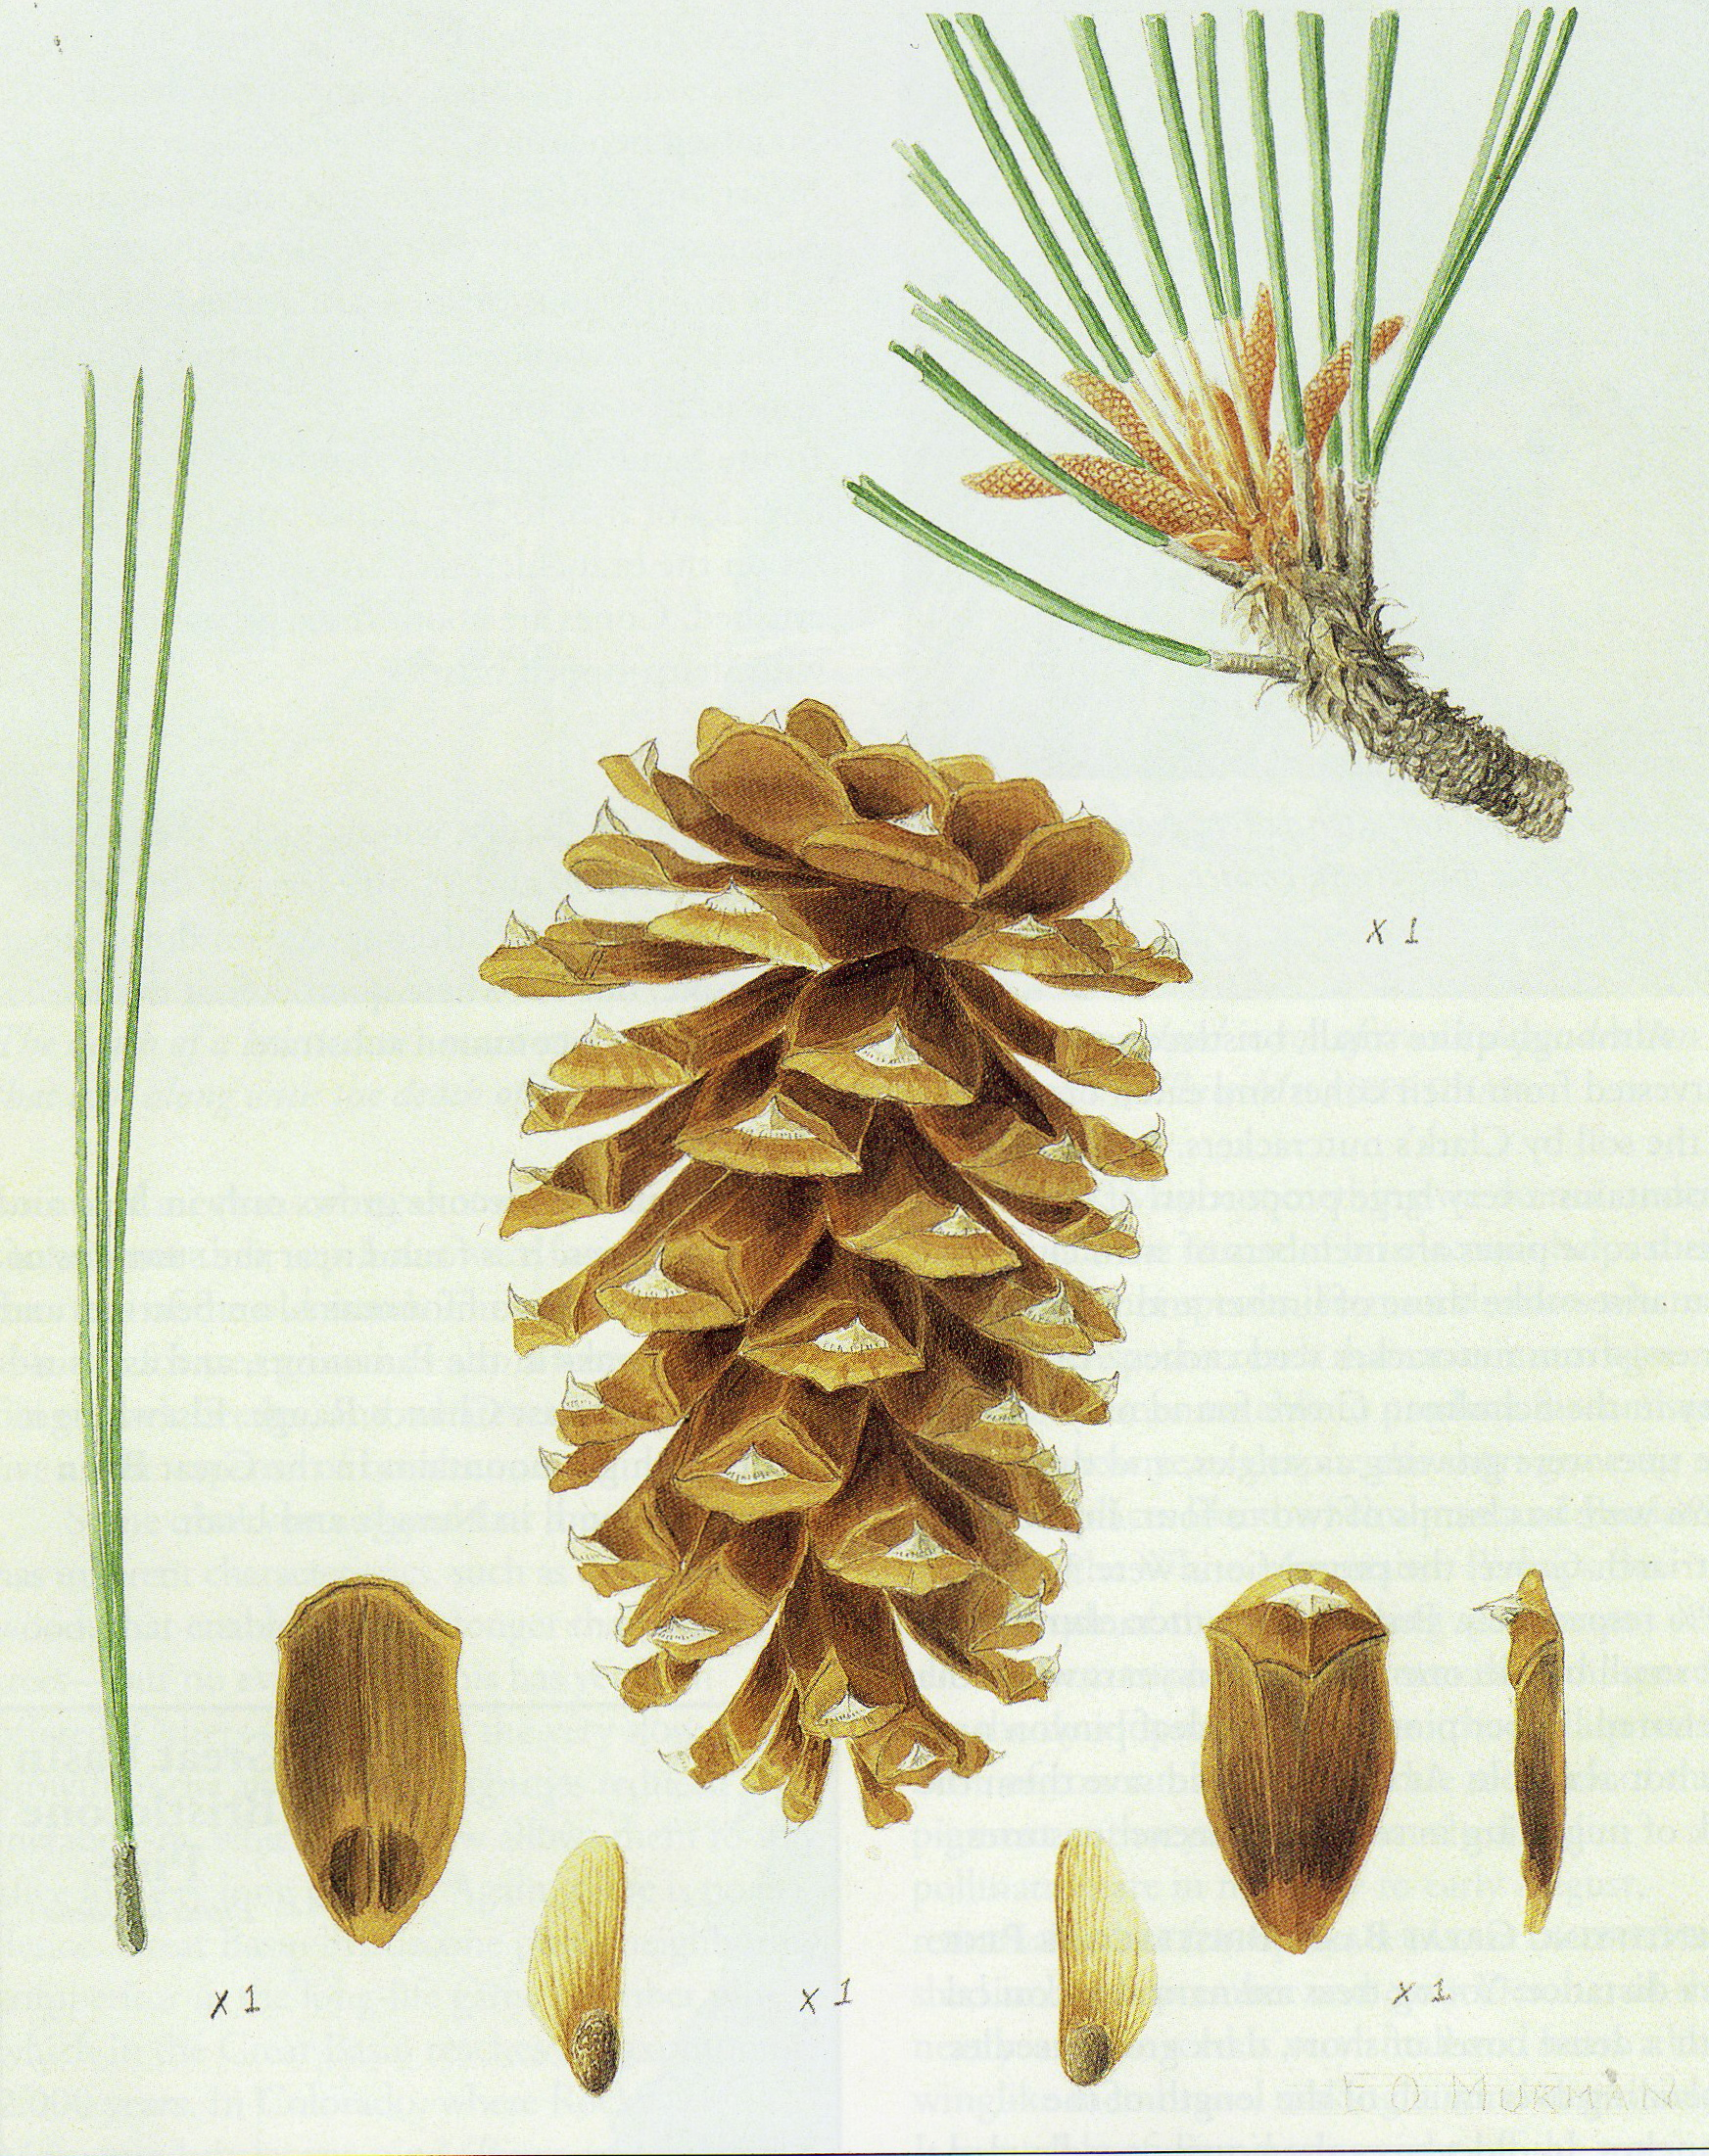 Pine Cone Illustration The future of forests ...